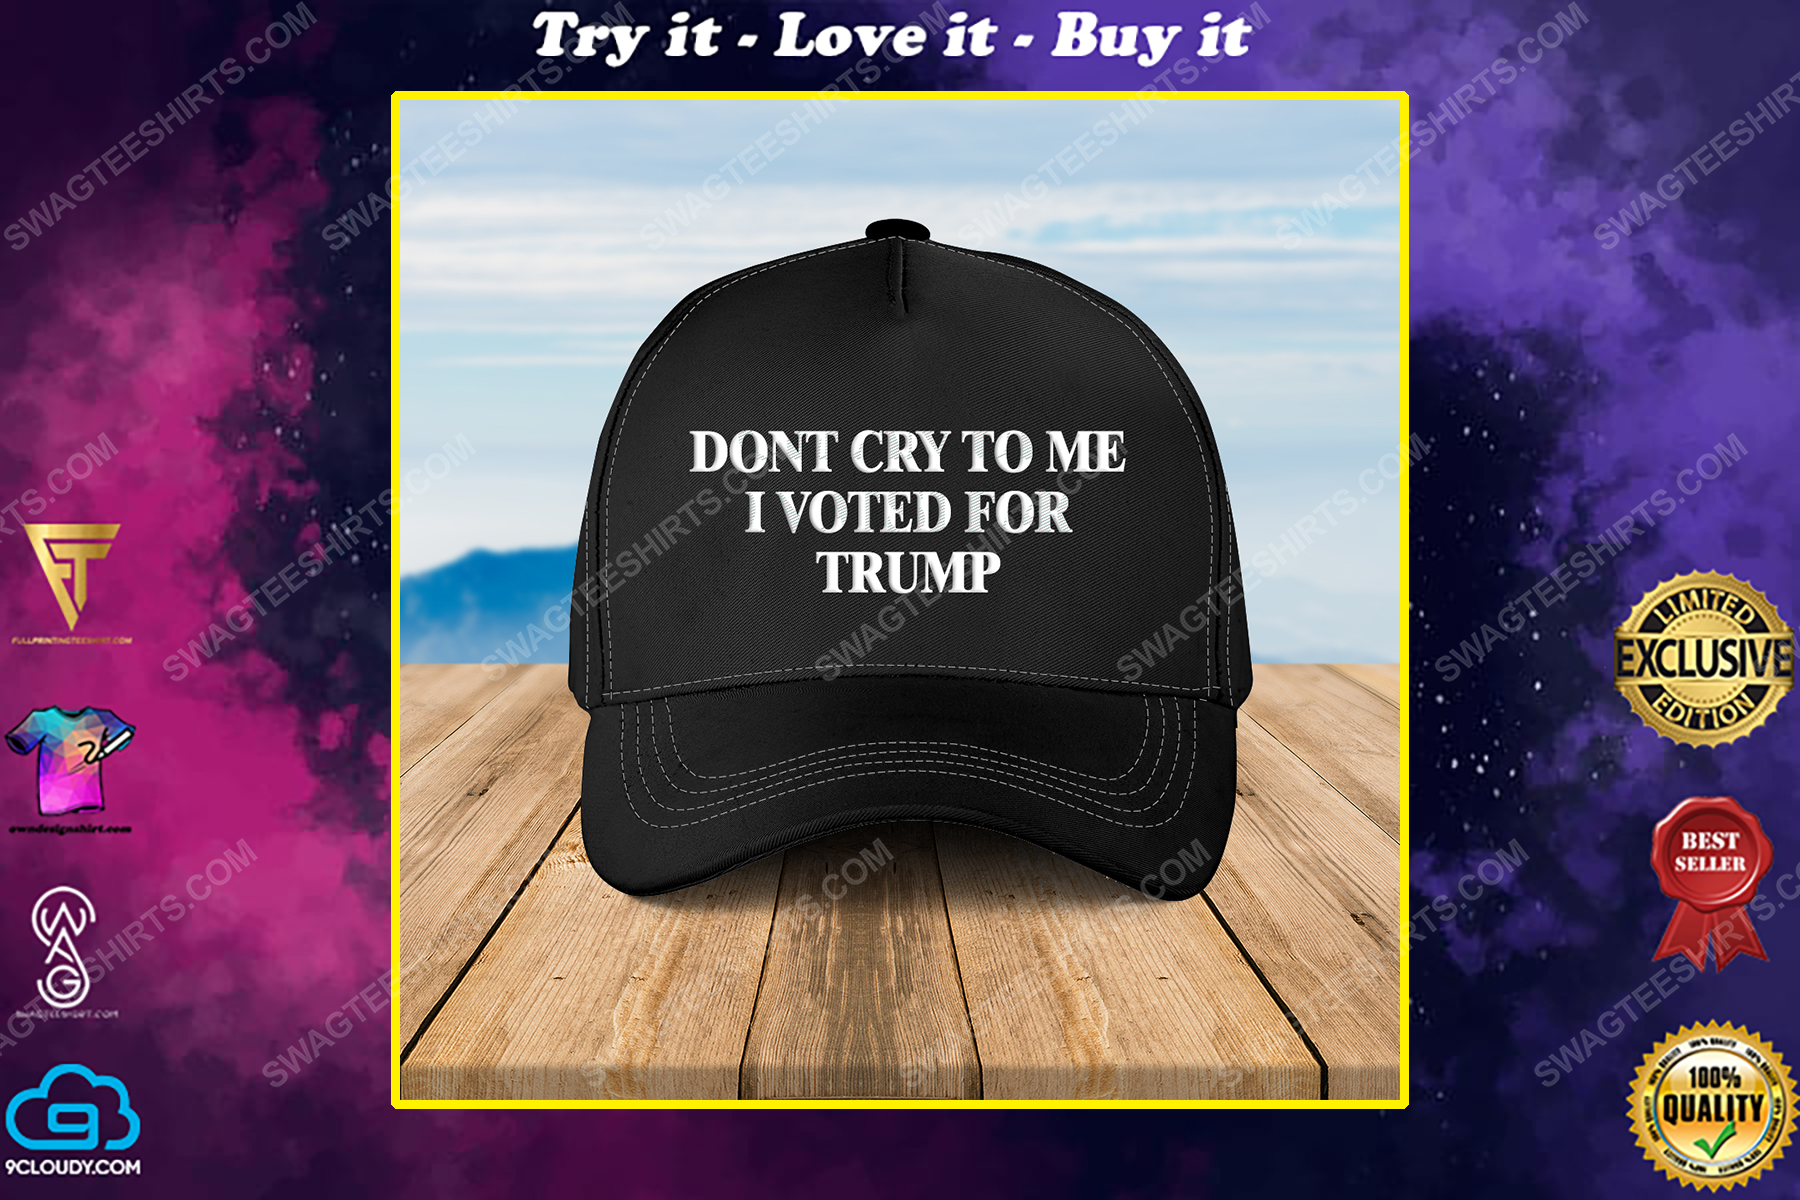 Camo don't cry to me i voted for trump full print classic hat